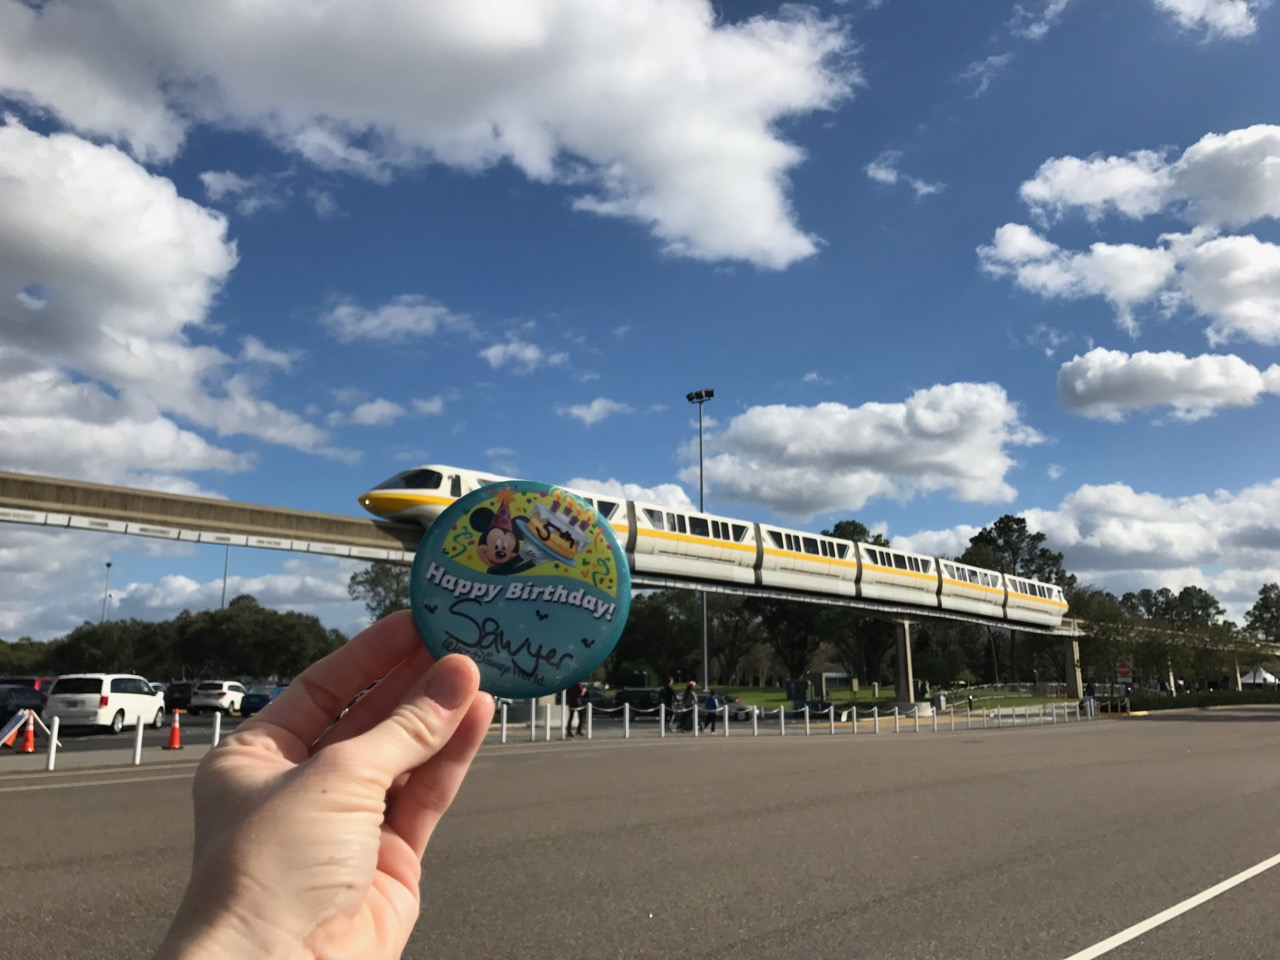 Epcot Birthday Button & Monorail